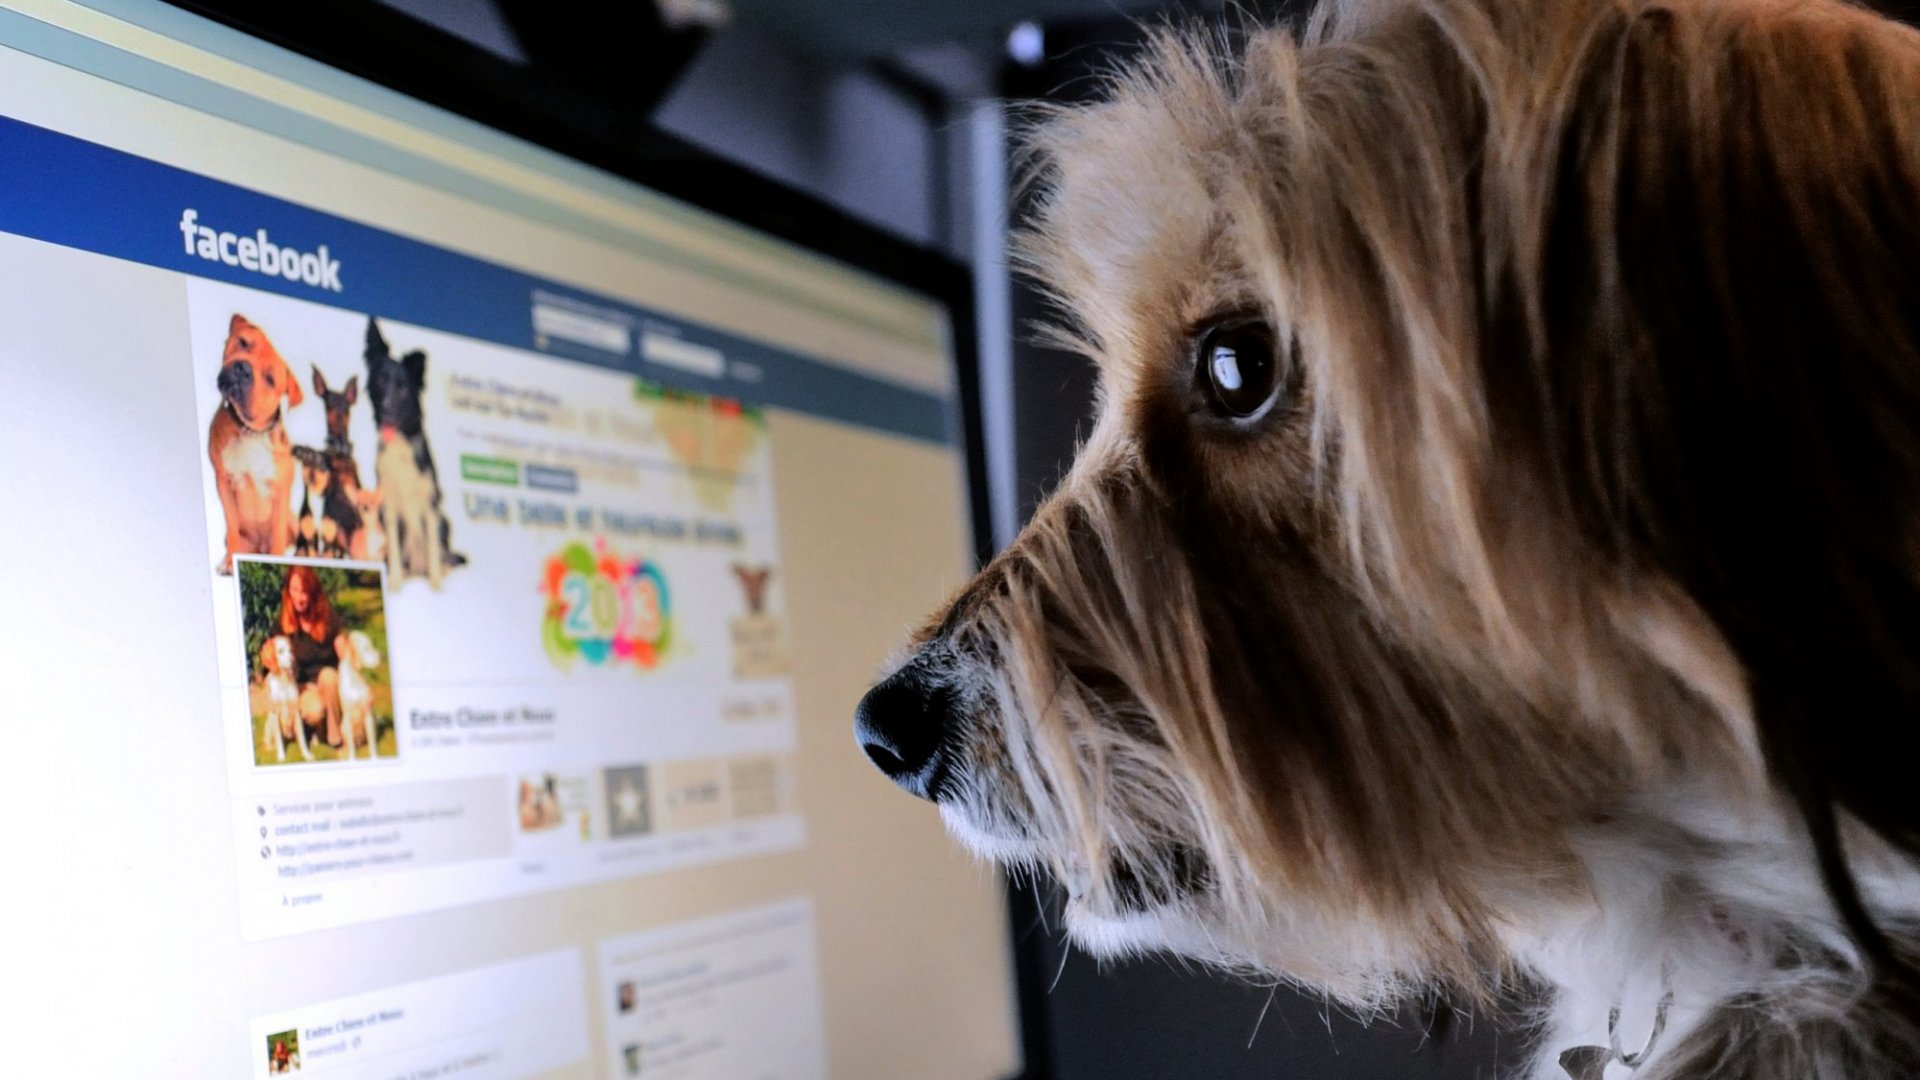 7 Things That Make Your Facebook Page Look Really Unprofessional